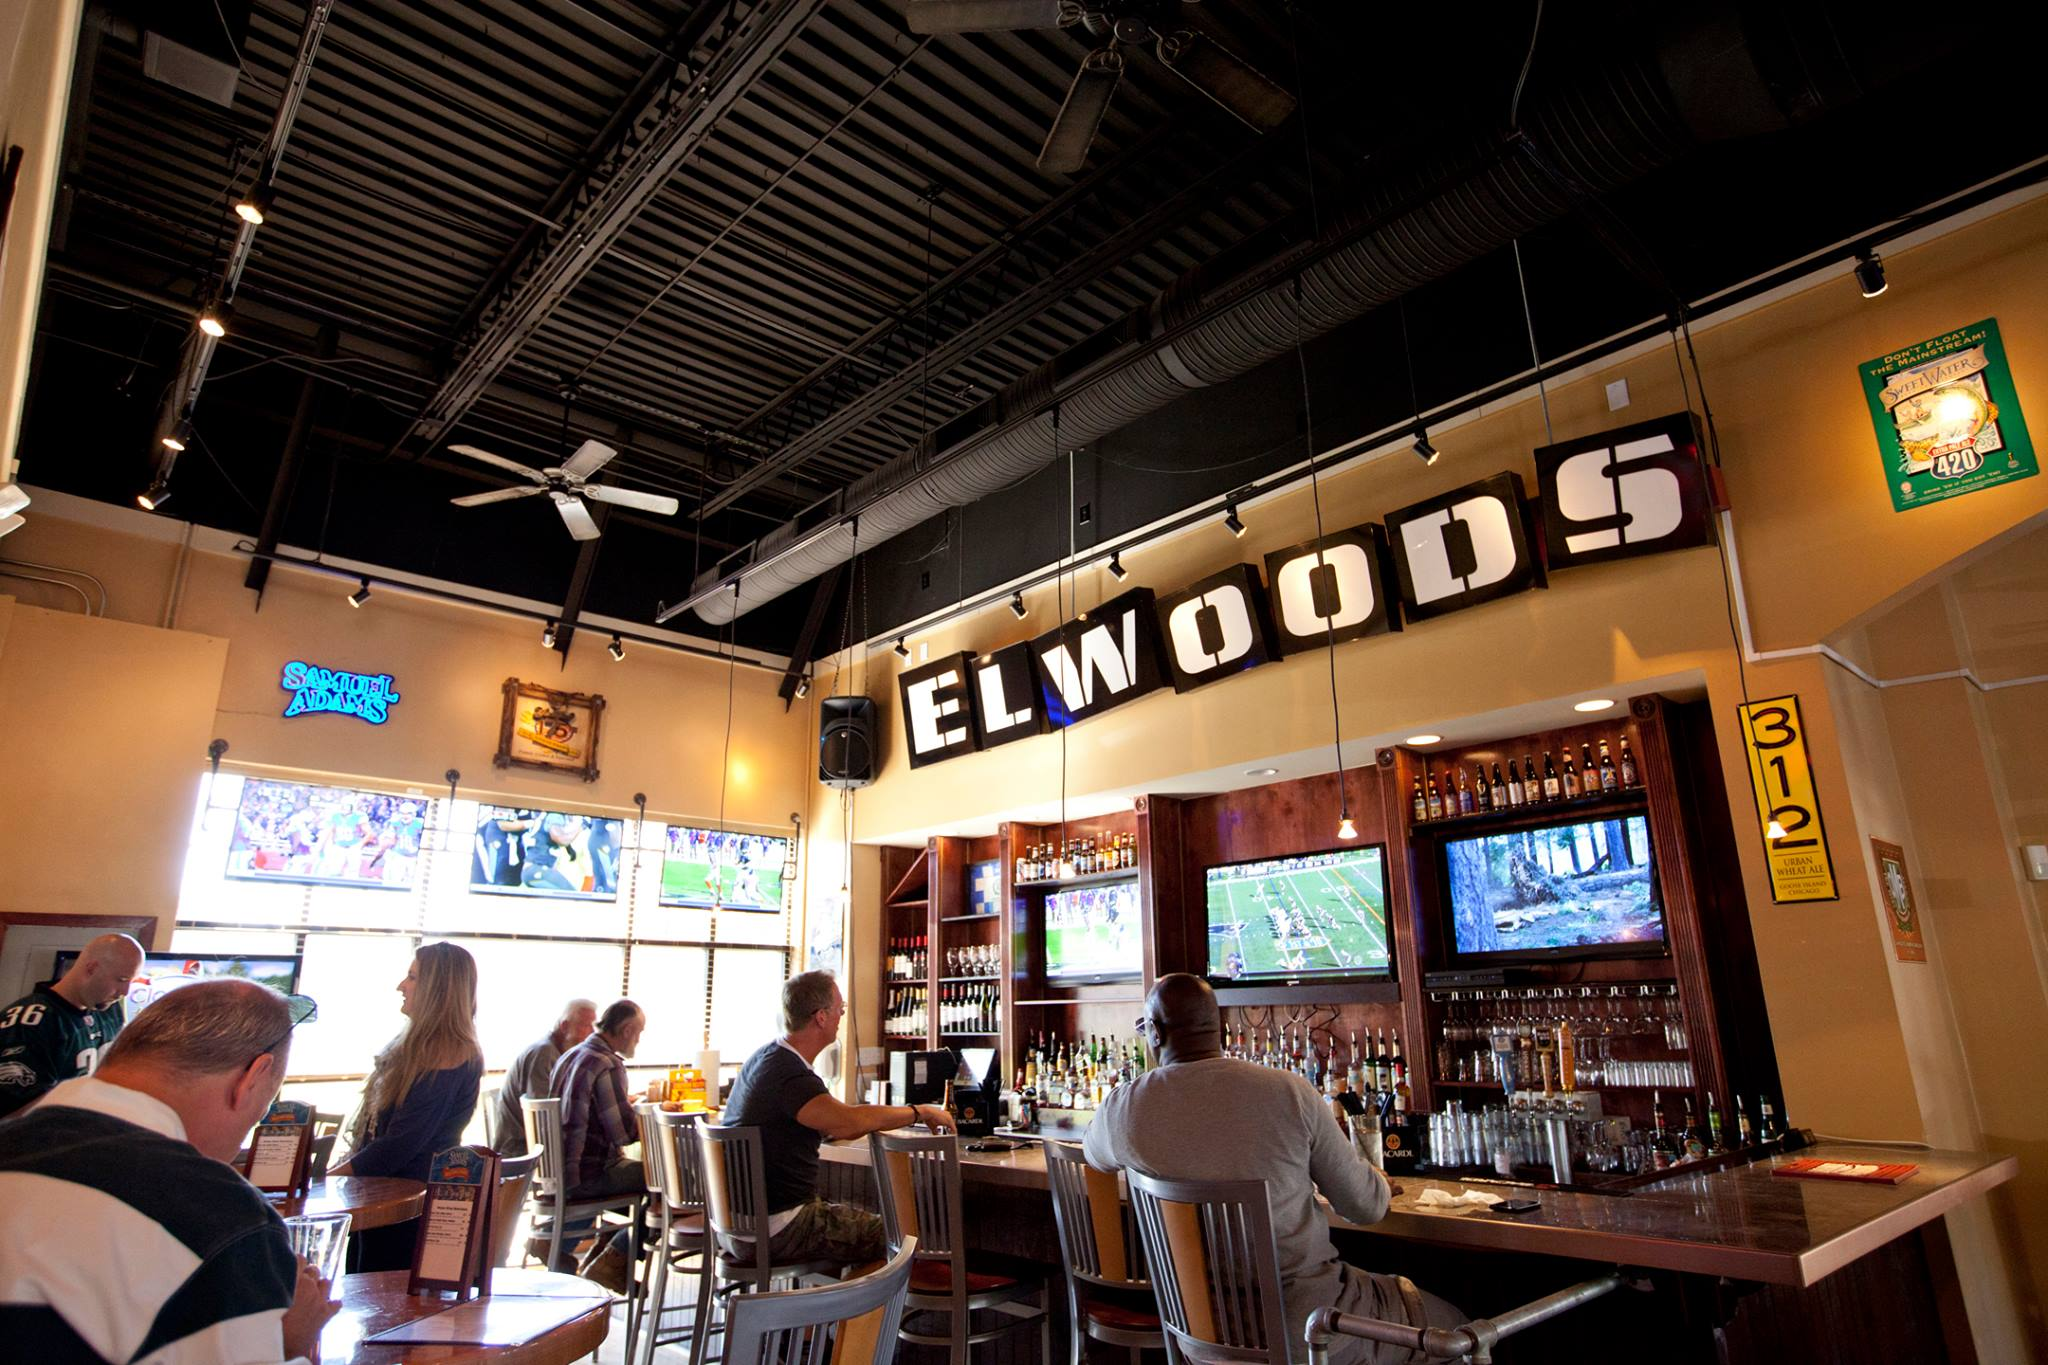 Elwoods closes as barbecue booms in Ballantyne